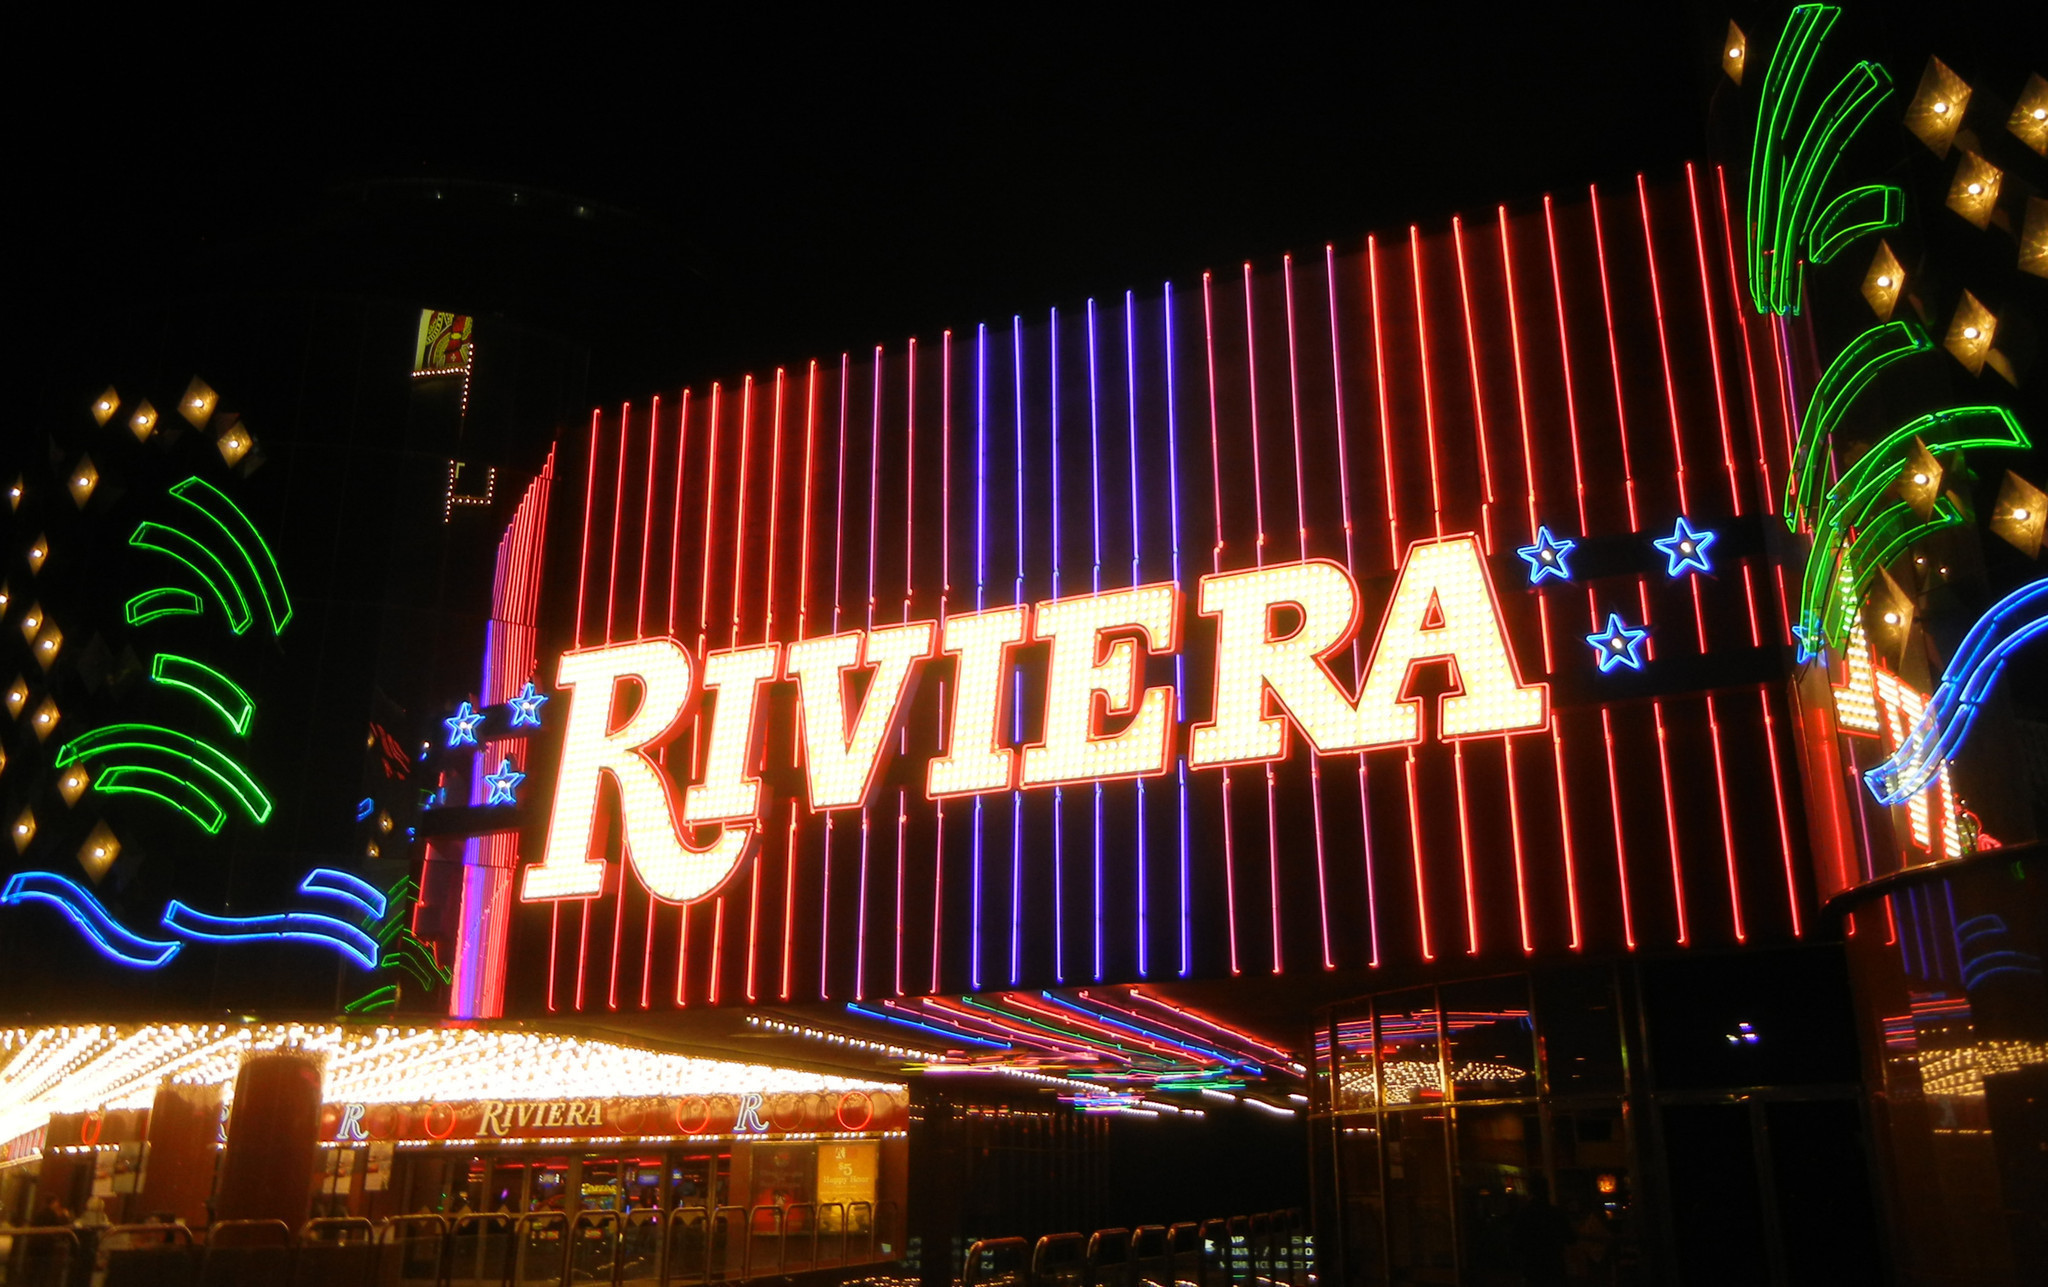 Riviera casino closes after 60 years on vegas strip for Riviera resort las vegas